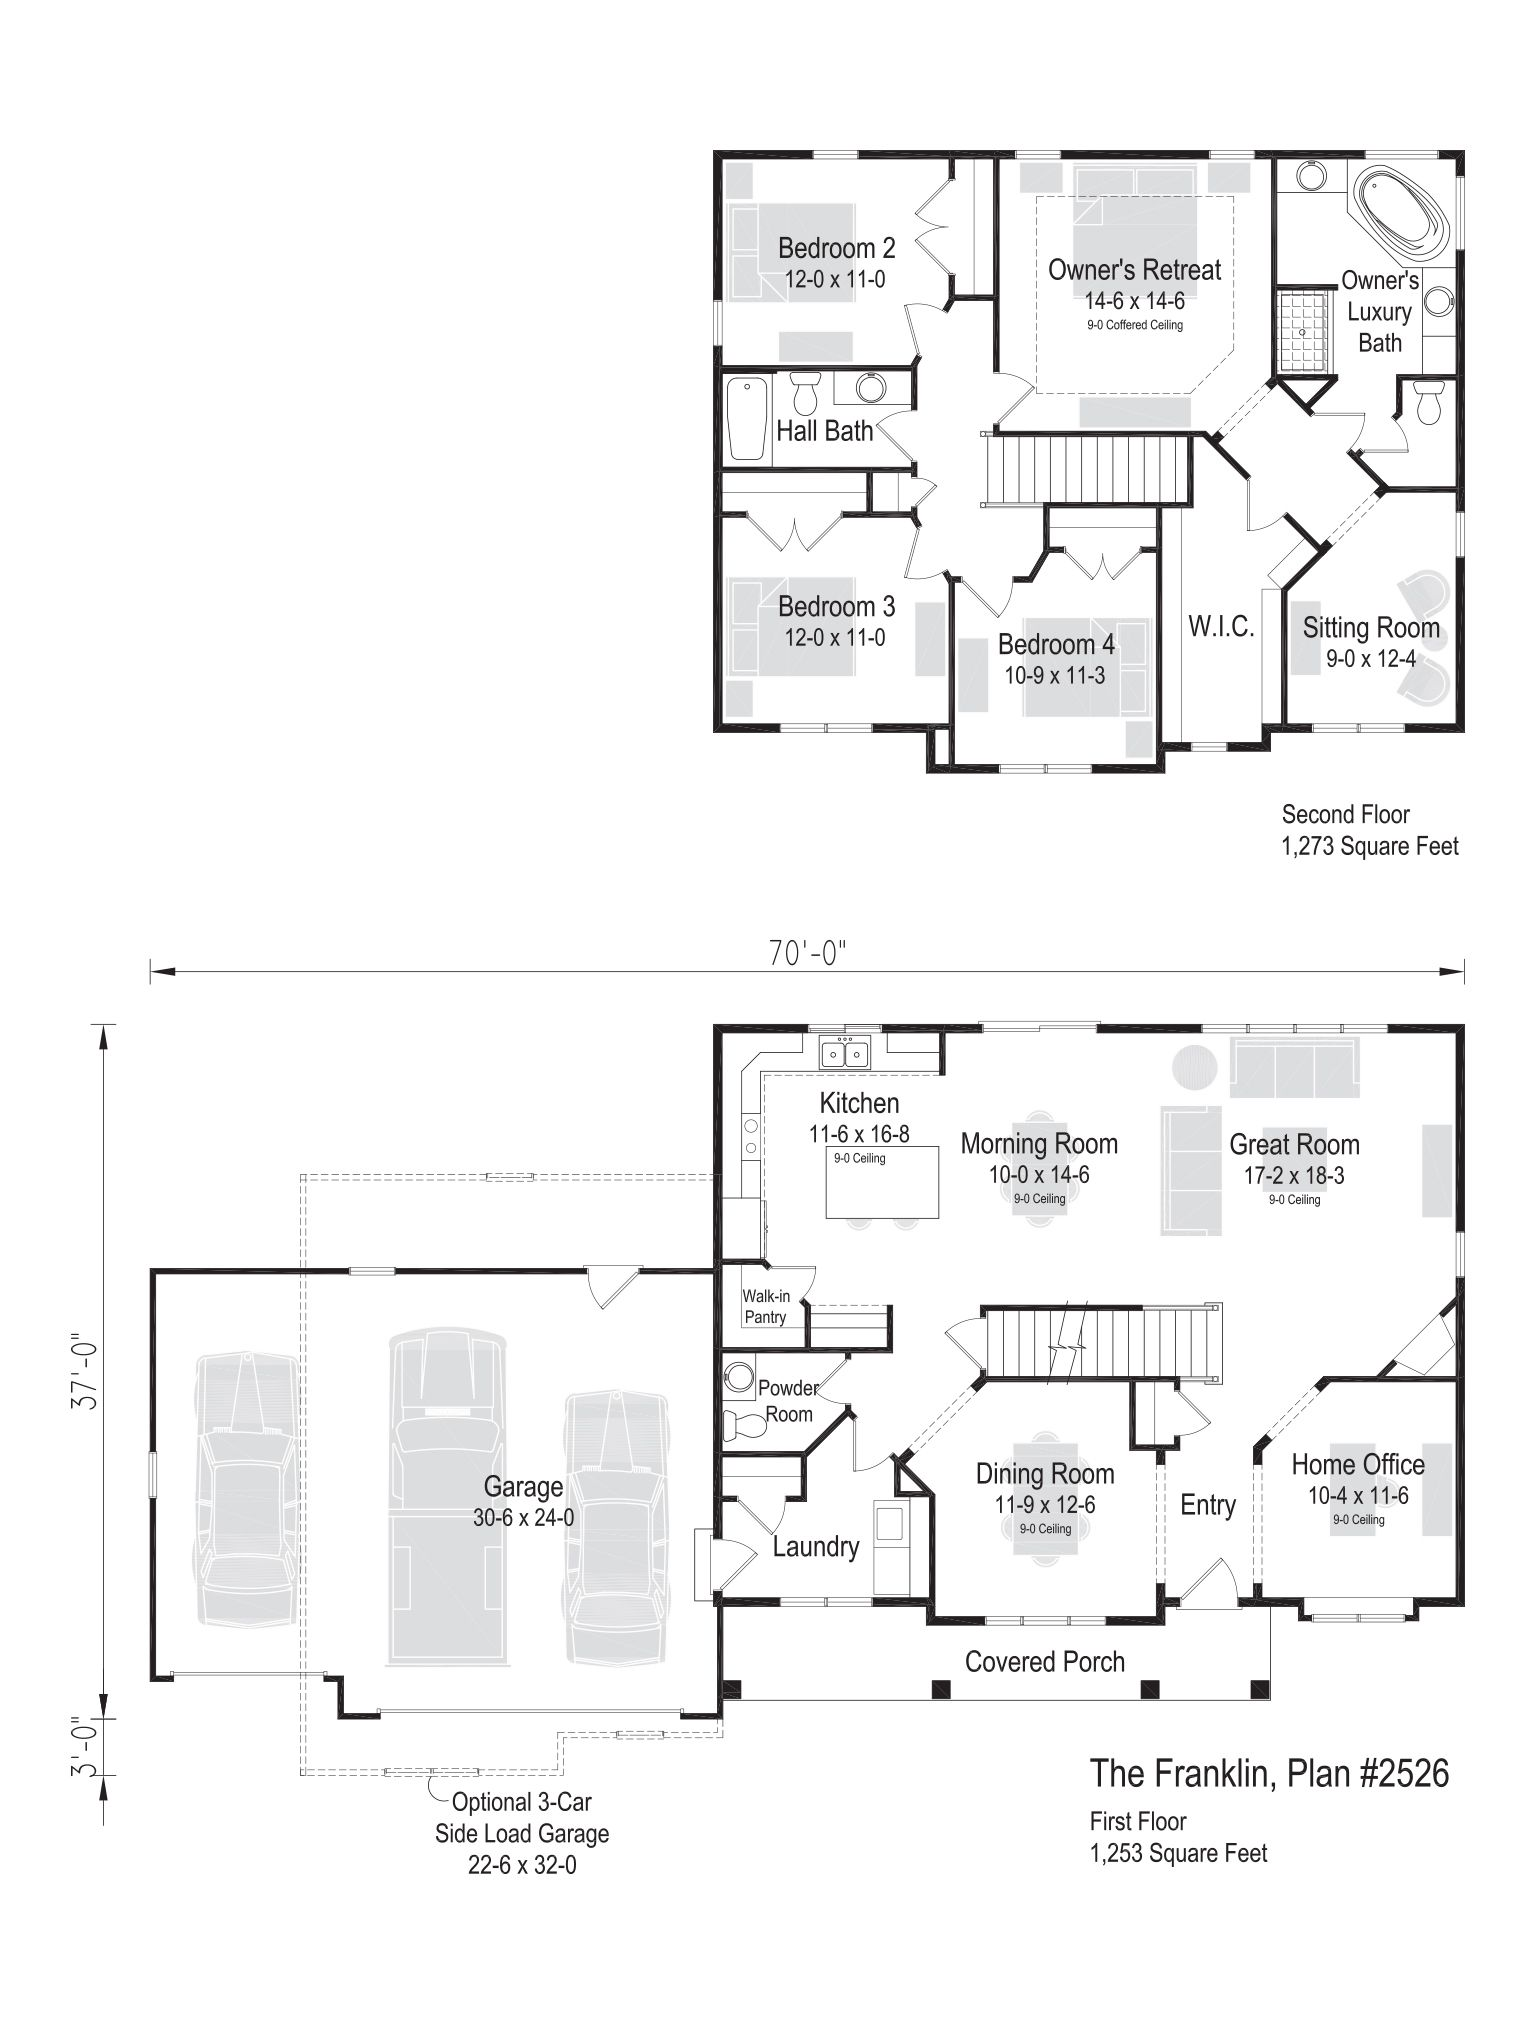 The Franklin Plan 2526 2 Story 2 526 Sq Ft 4 Bedroom 2 5 Bathroom House Layout Plans Floor Plan 4 Bedroom Sims House Plans